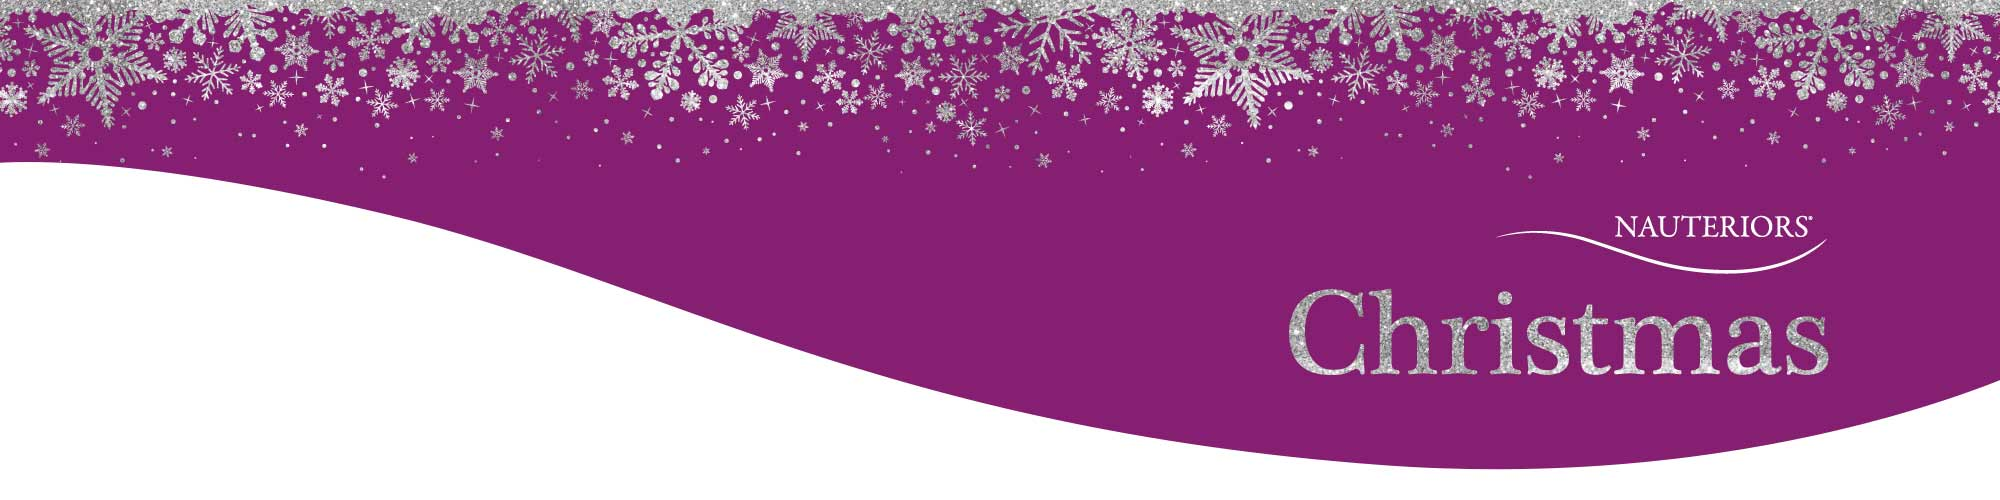 xmas page banner